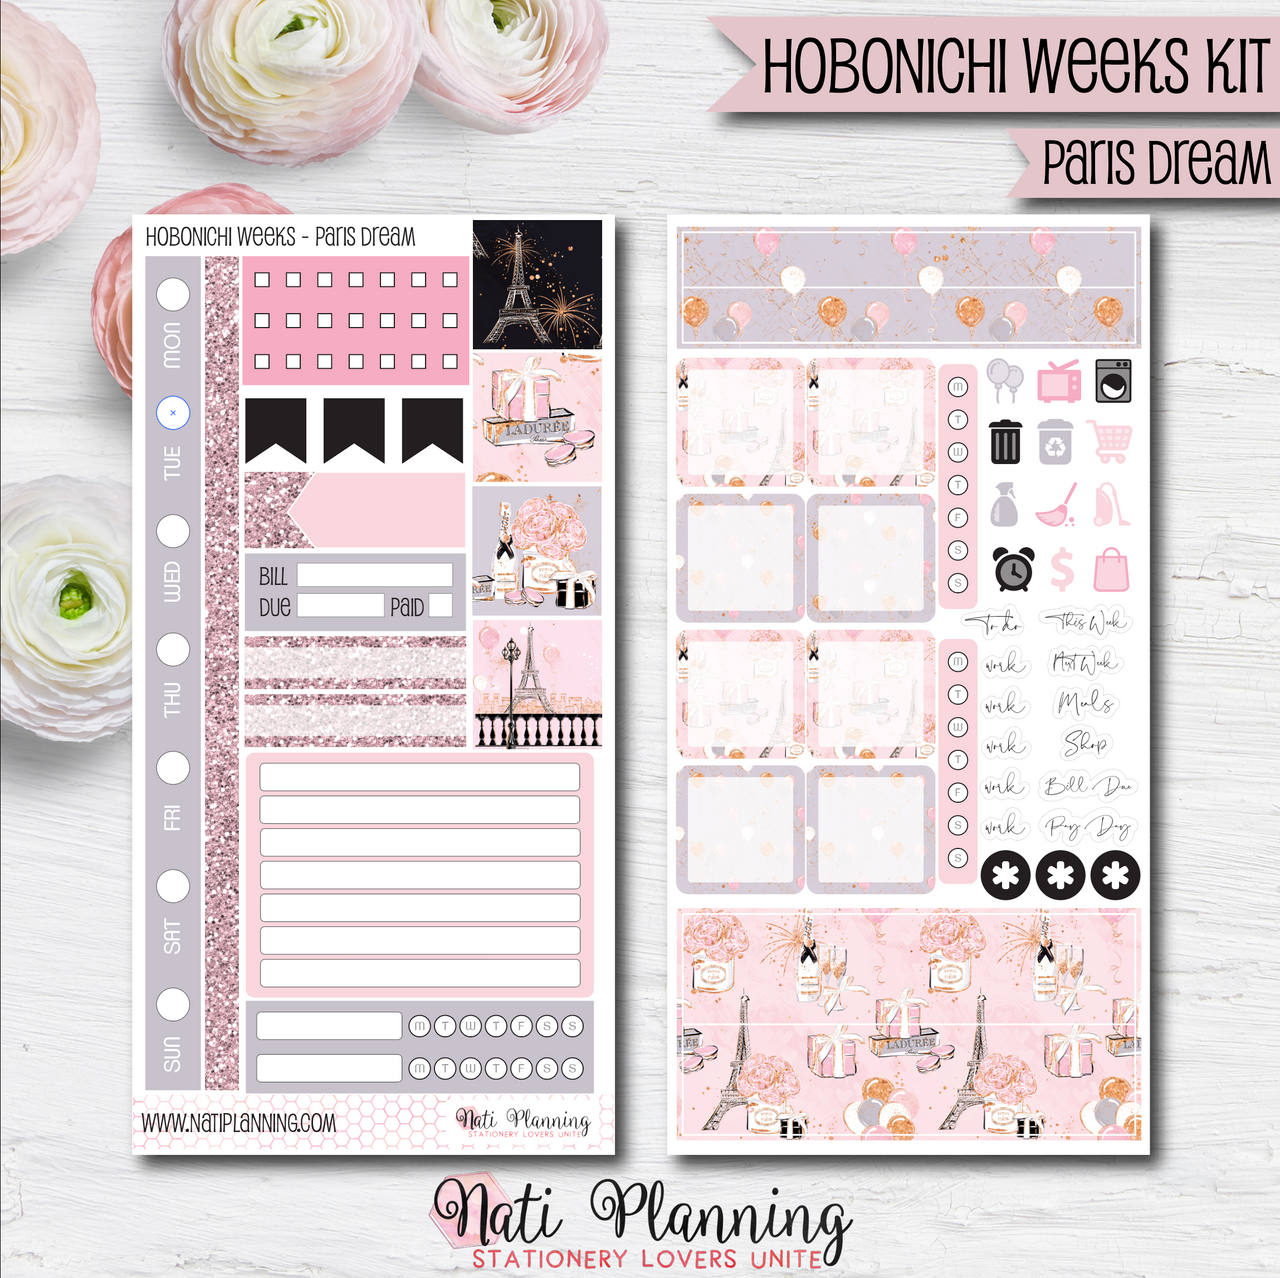 Paris Dream - HOBONICHI WEEKS Sticker Kit